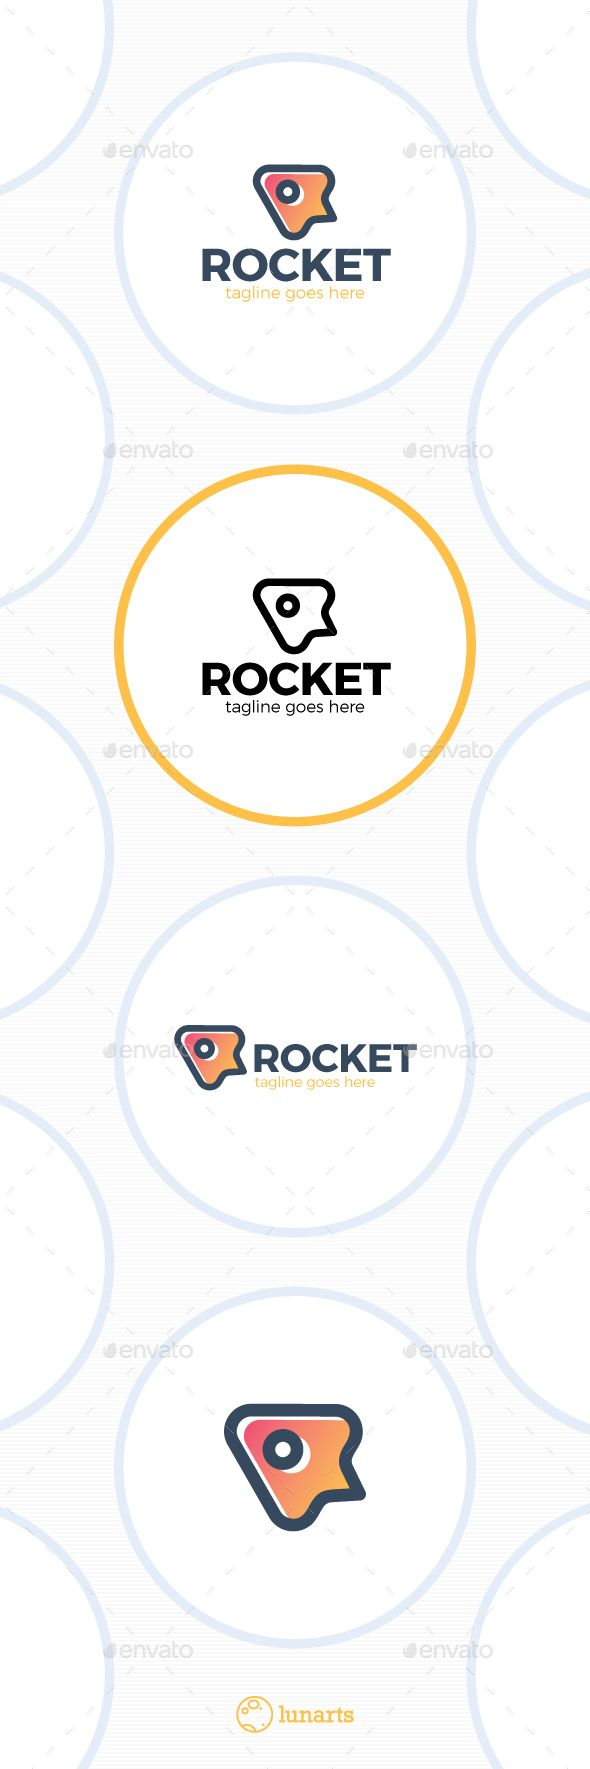 Simple Rocket Logo — Vector EPS #agency #creative • Available here → https://graphicriver.net/item/simple-rocket-logo/13436423?ref=pxcr